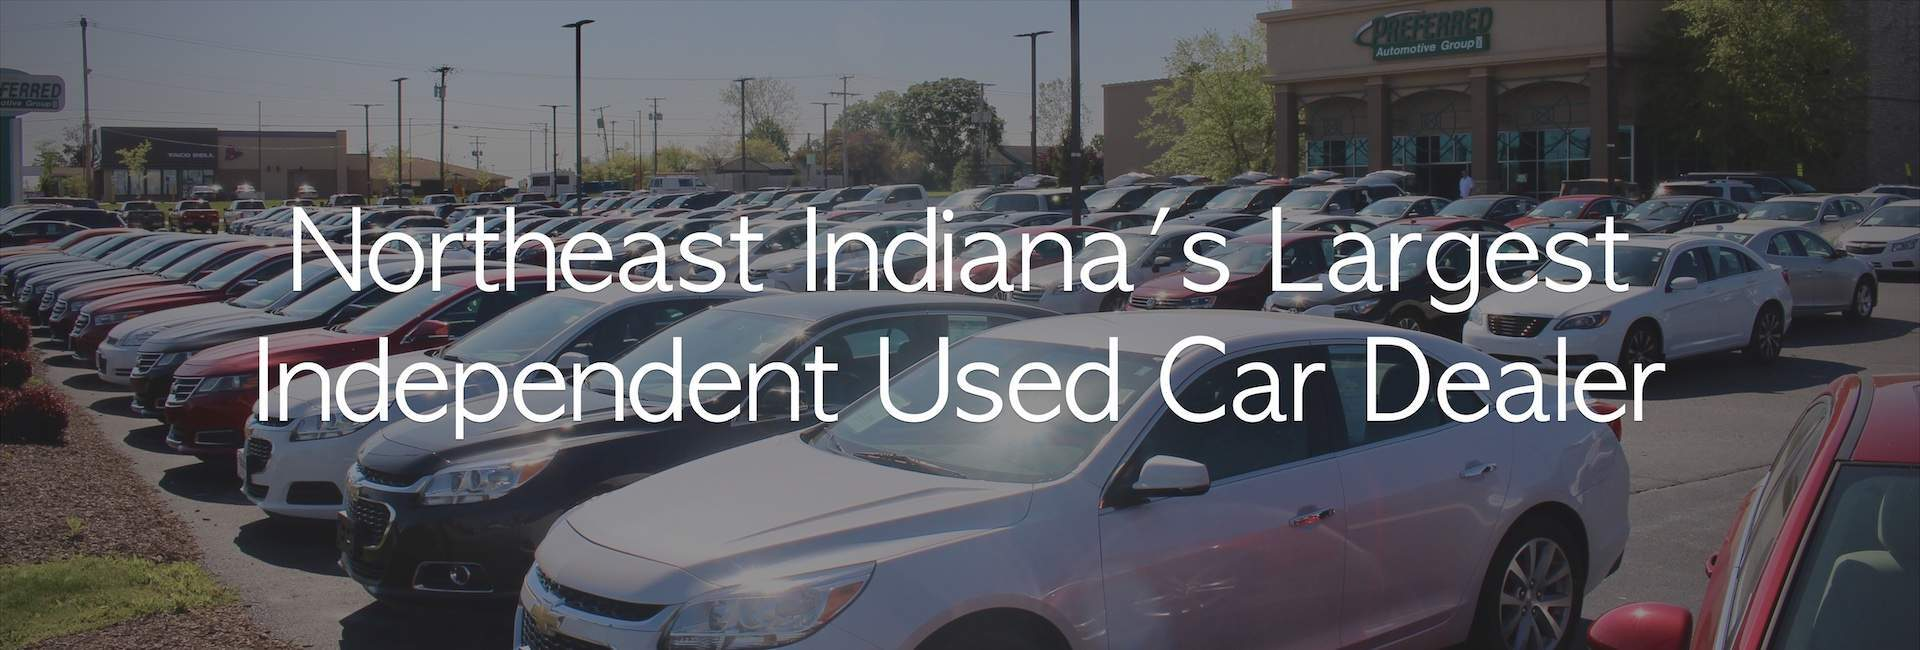 Used car dealerships in fort wayne auburn and kendallville northeast indianas largest independent used car dealer fandeluxe Images